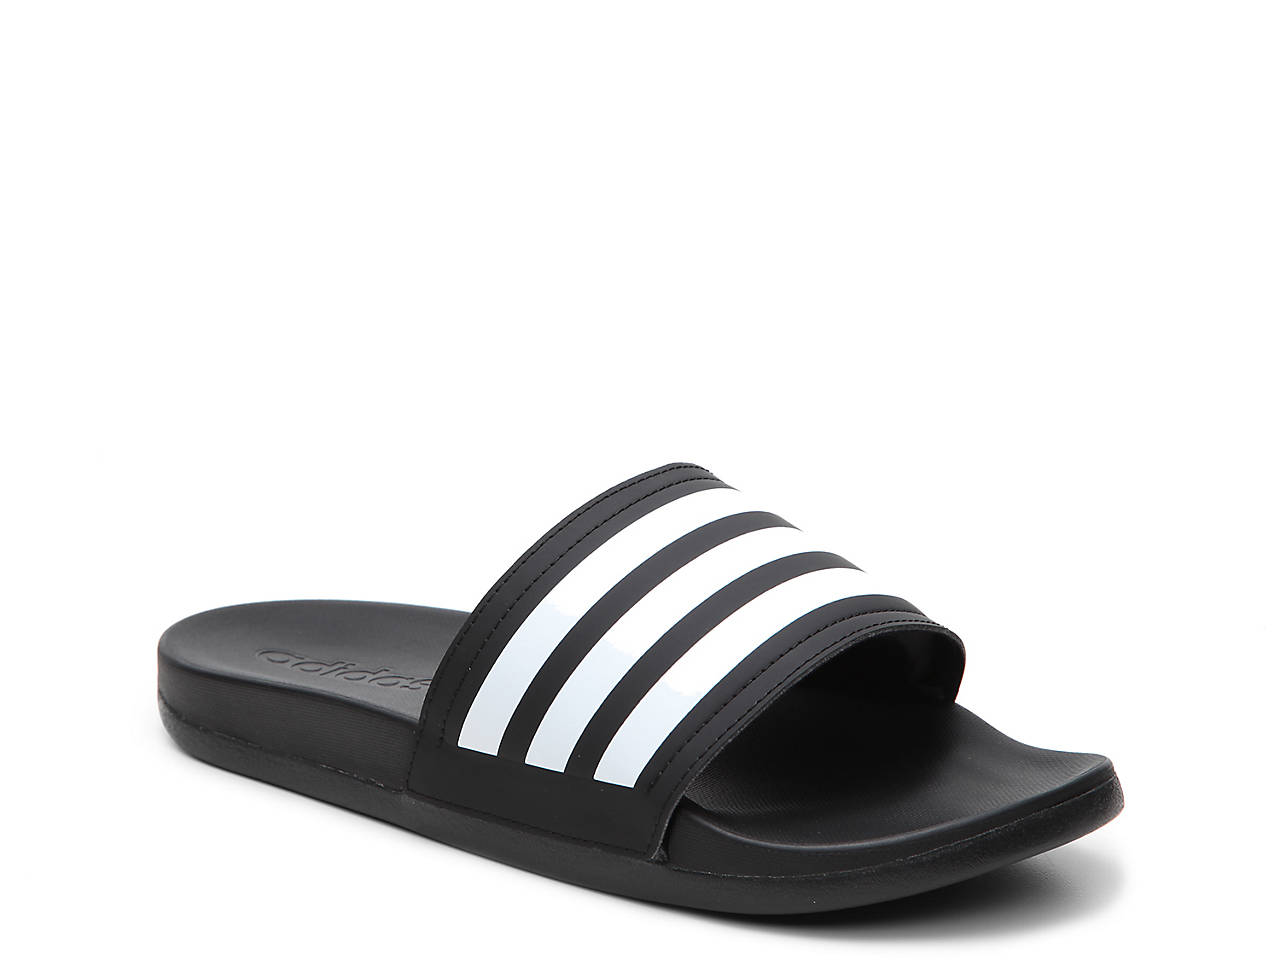 0d8c30ebf203 adidas Adilette Cloudfoam Ultra Stripes Slide Sandal - Women s ...